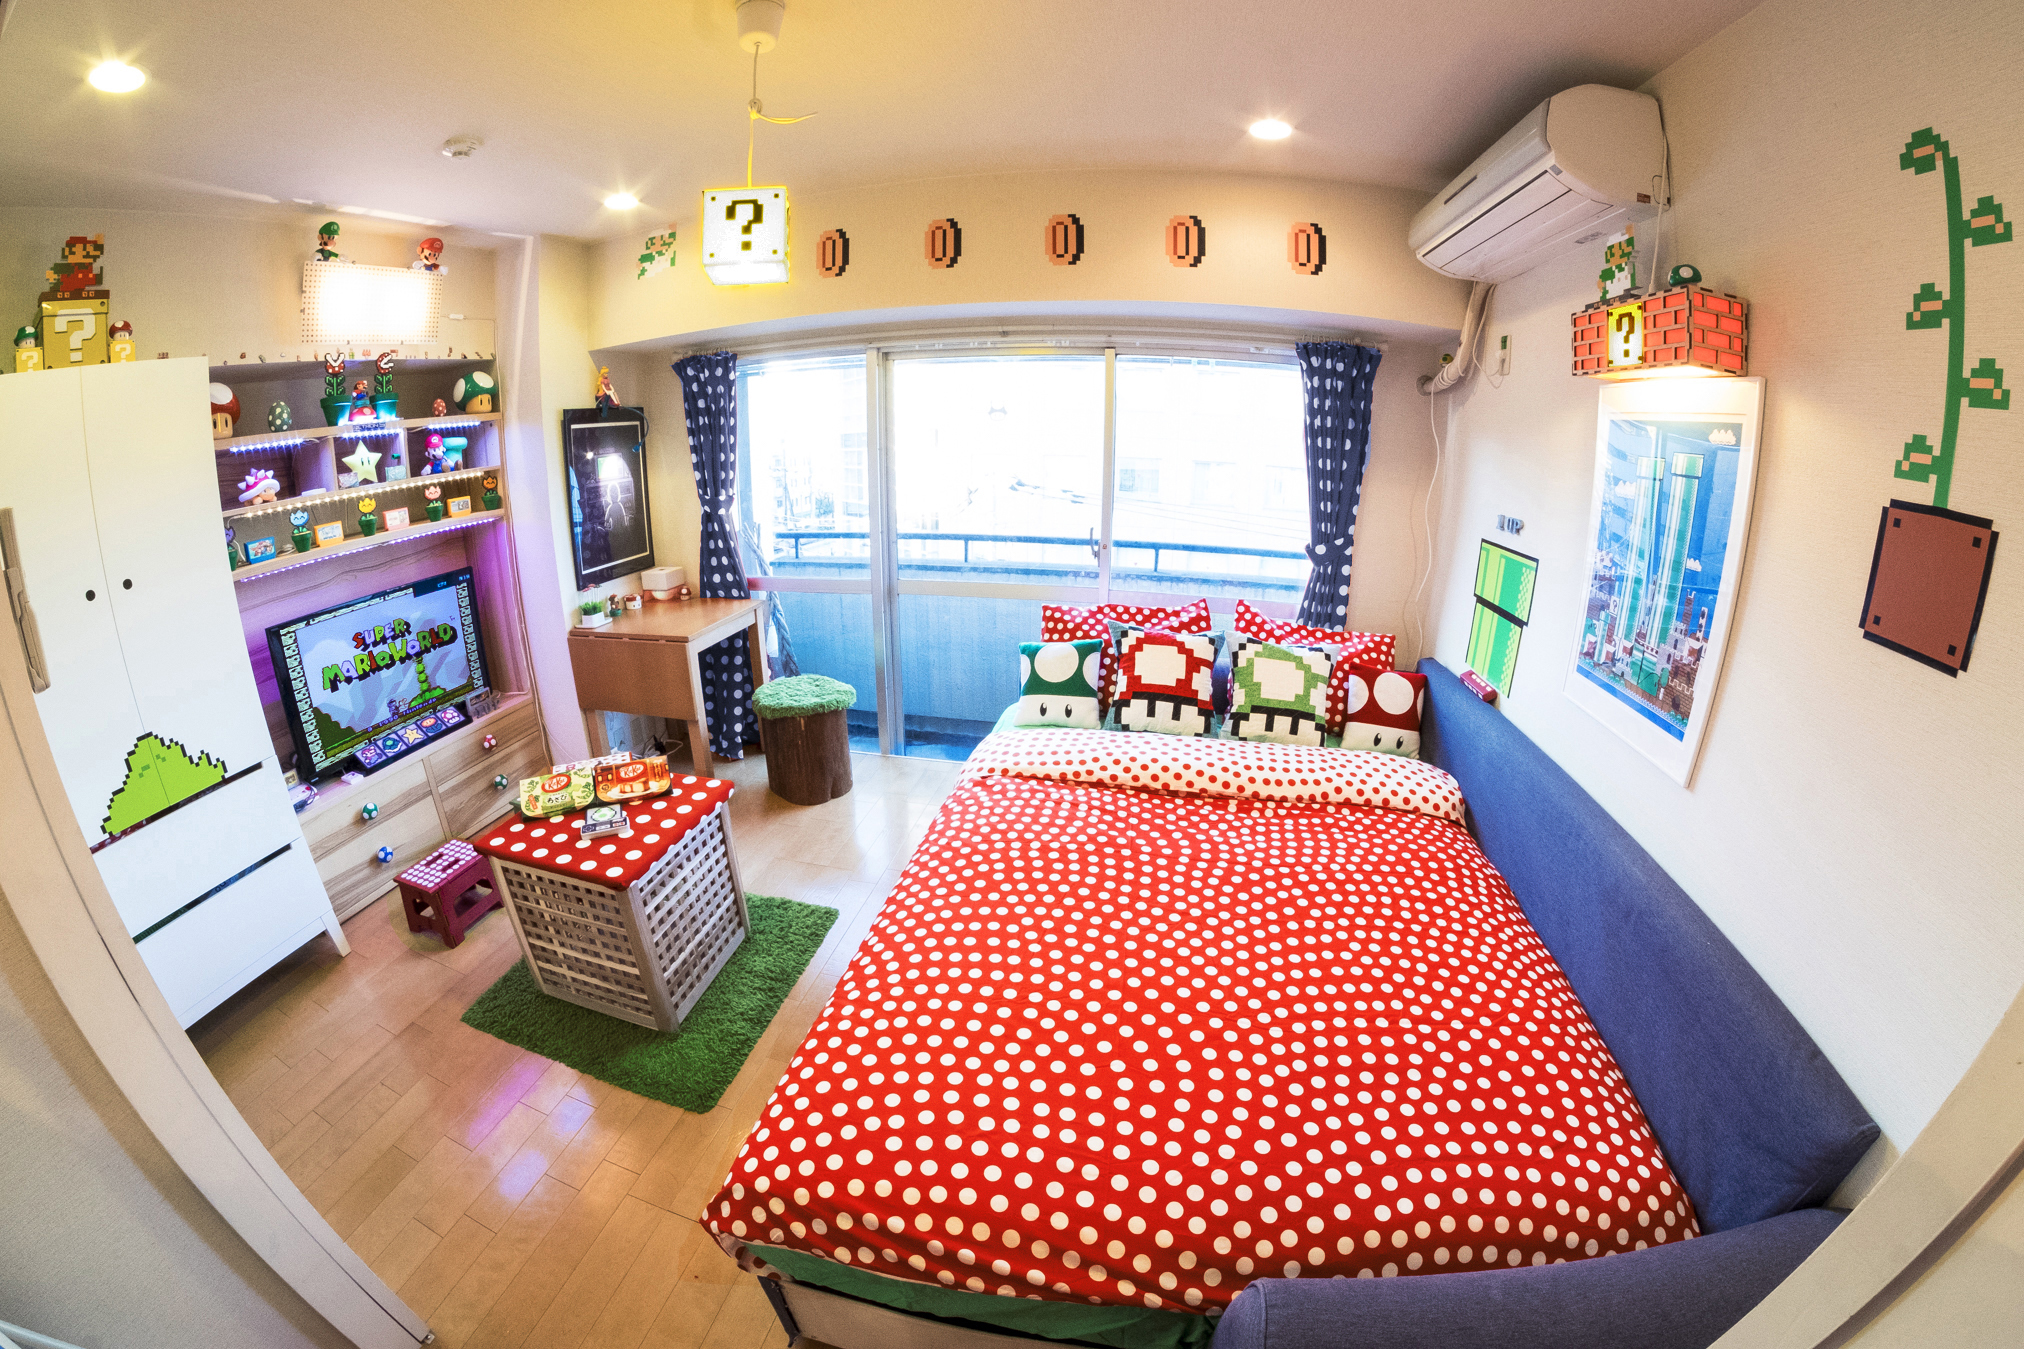 From The Bedroom To The Bathroom, This Apartment Is Covered In Detailed  Mario Decor. Ideal For Tokyo Visitors Who Like The Idea Of A Cute Novelty  Apartment ...